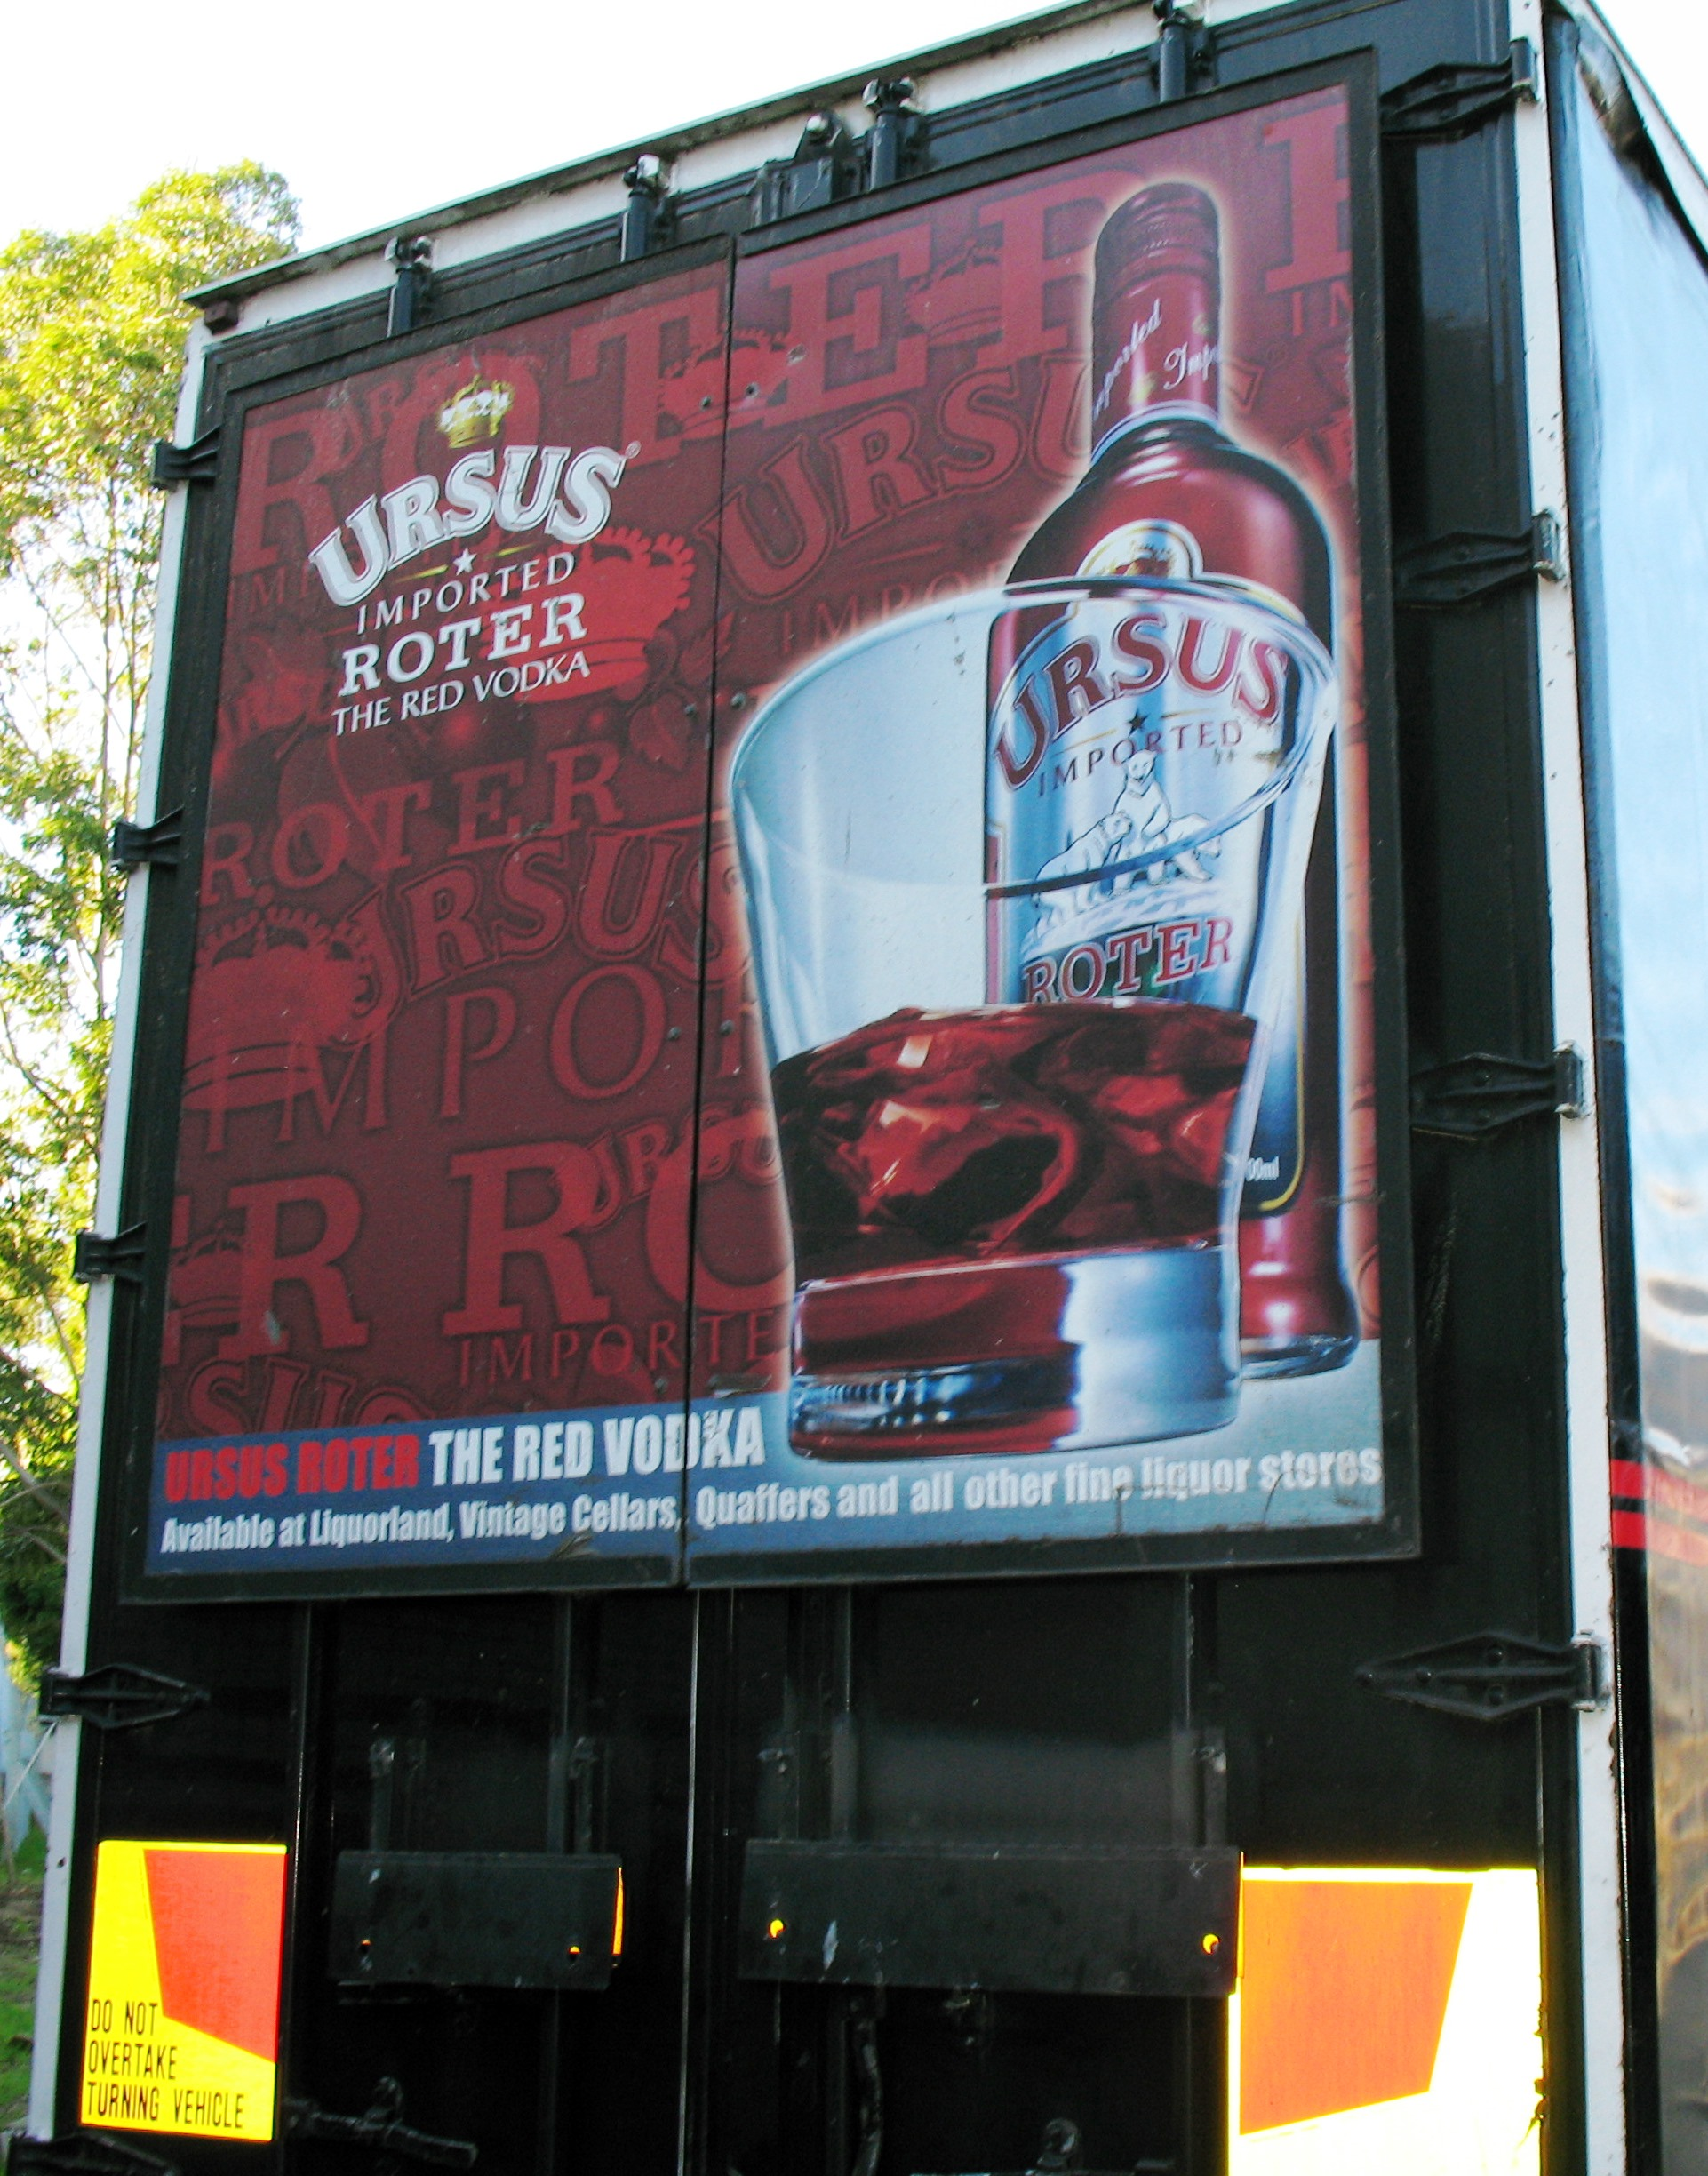 Truck advertising. Ursus Imported Roter The Red Vodka campaign. TruckBack on First Fleet rigid. Frame.